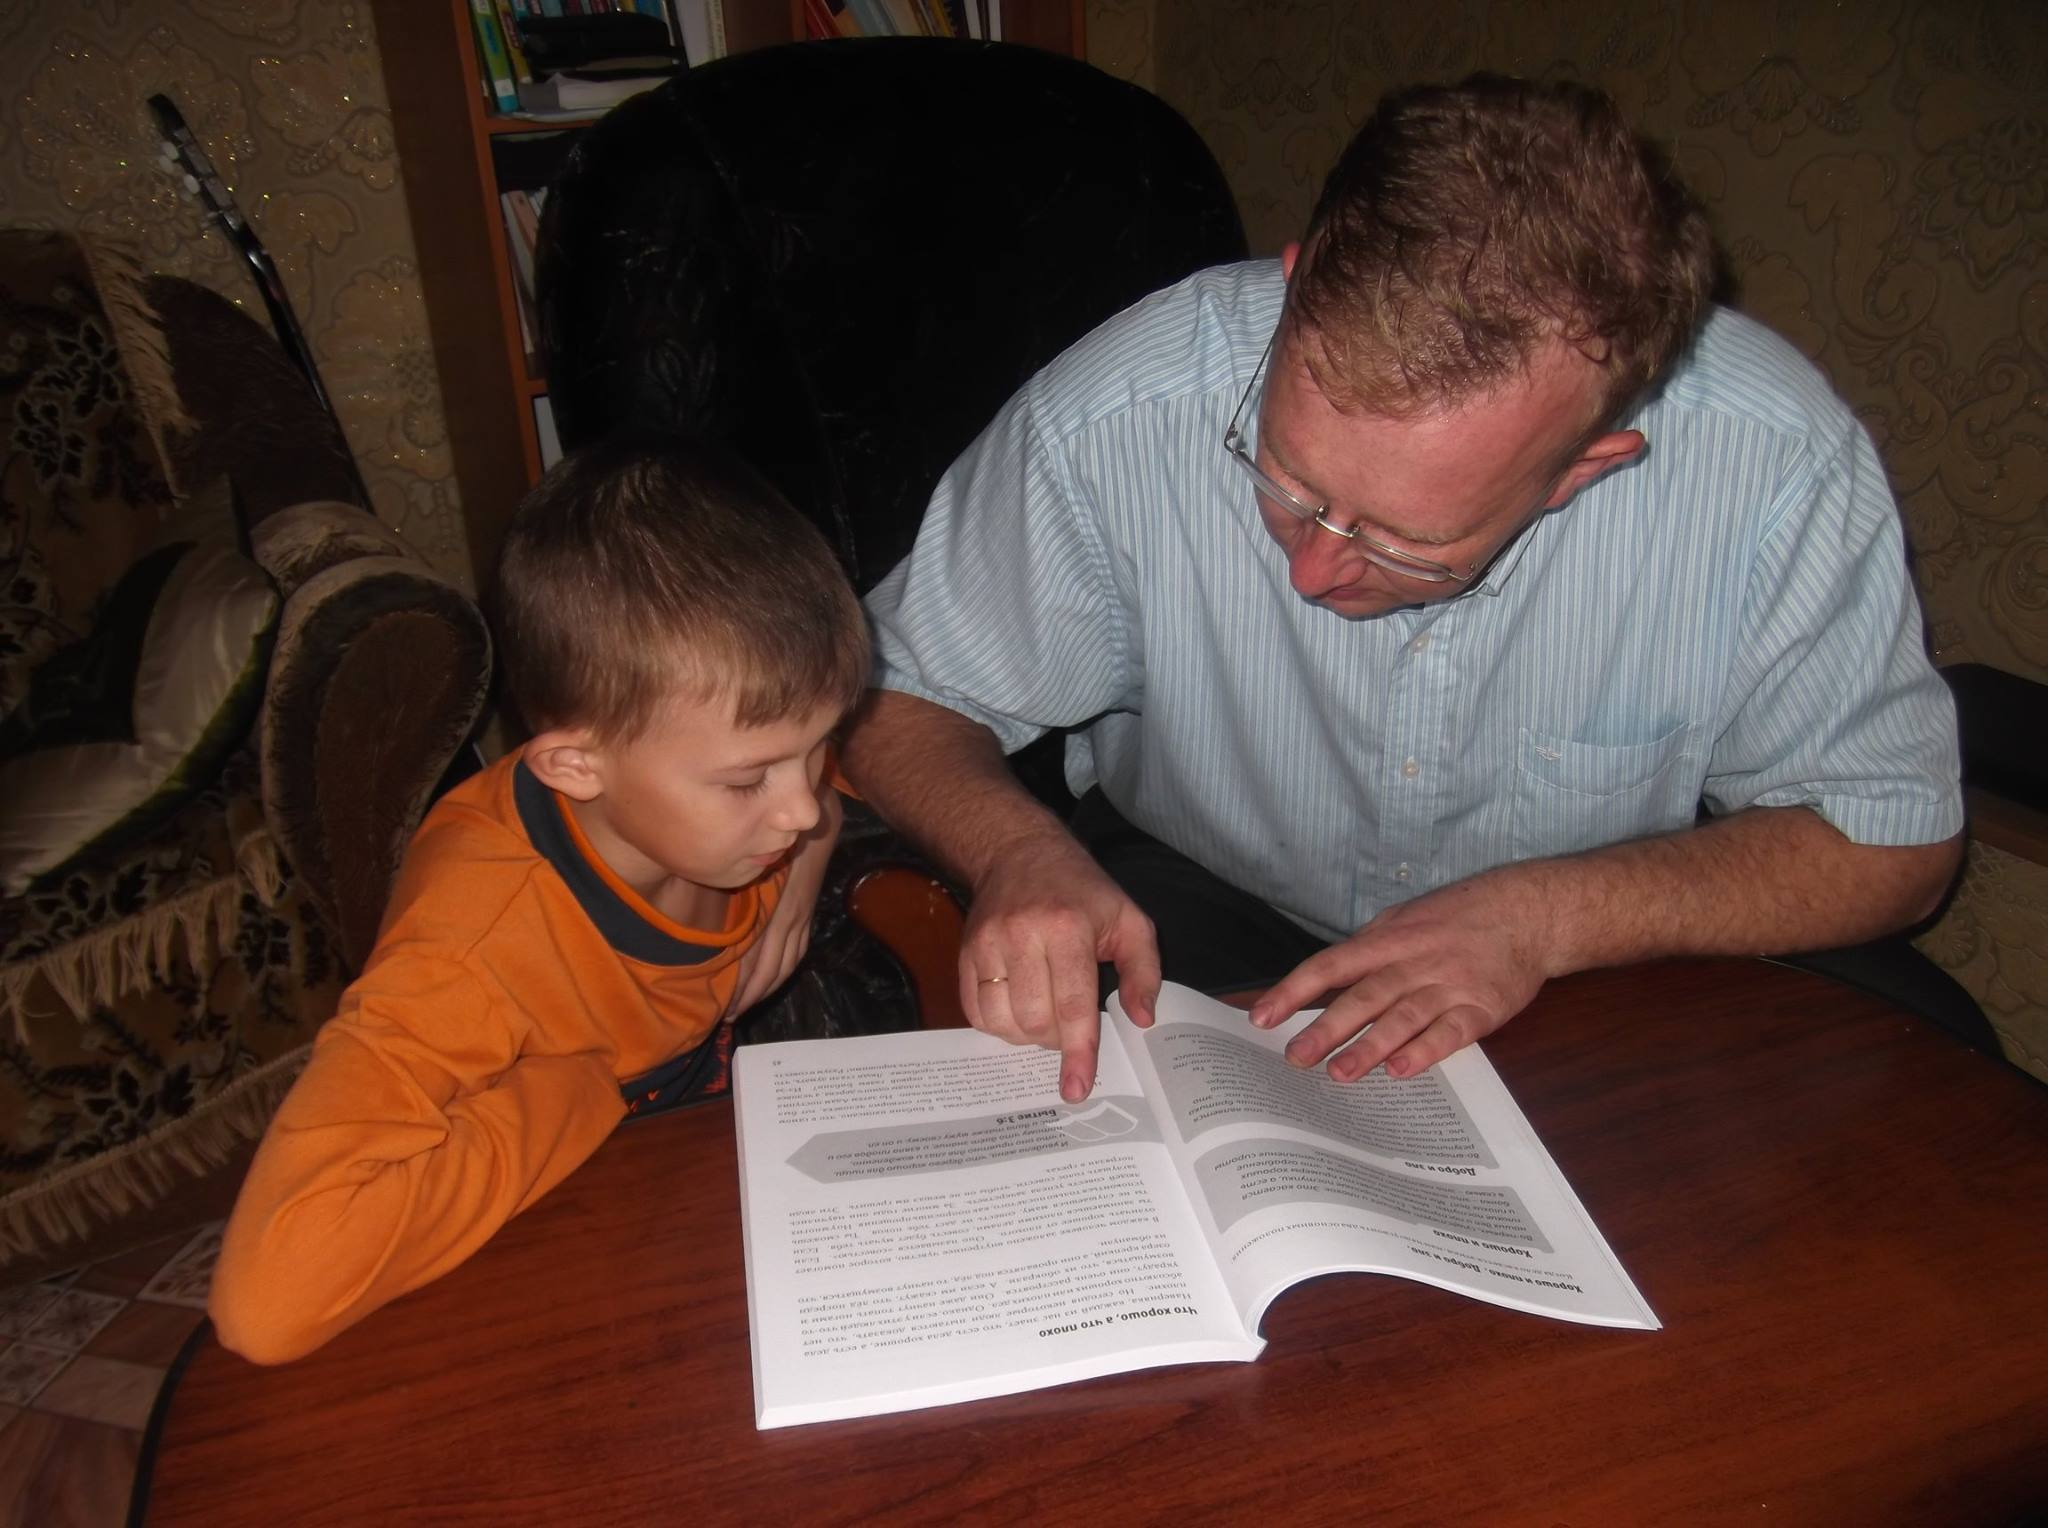 Jhenya helps his son Slava to gain an understanding of a new subject.